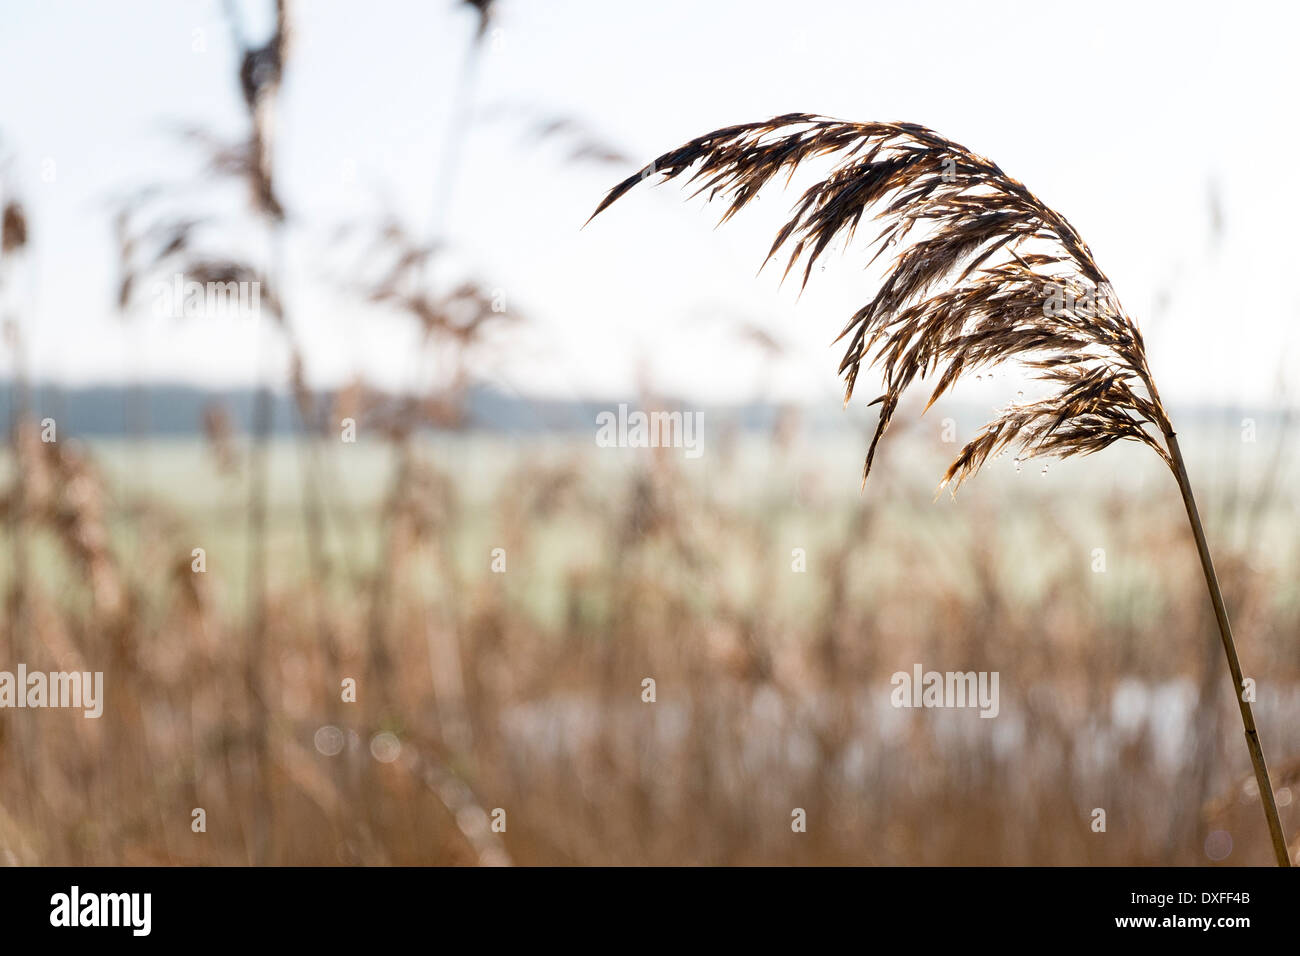 Phragmites, the common reed, is often used for thatching and is known in the UK as Norfolk reed or water reed - Stock Image